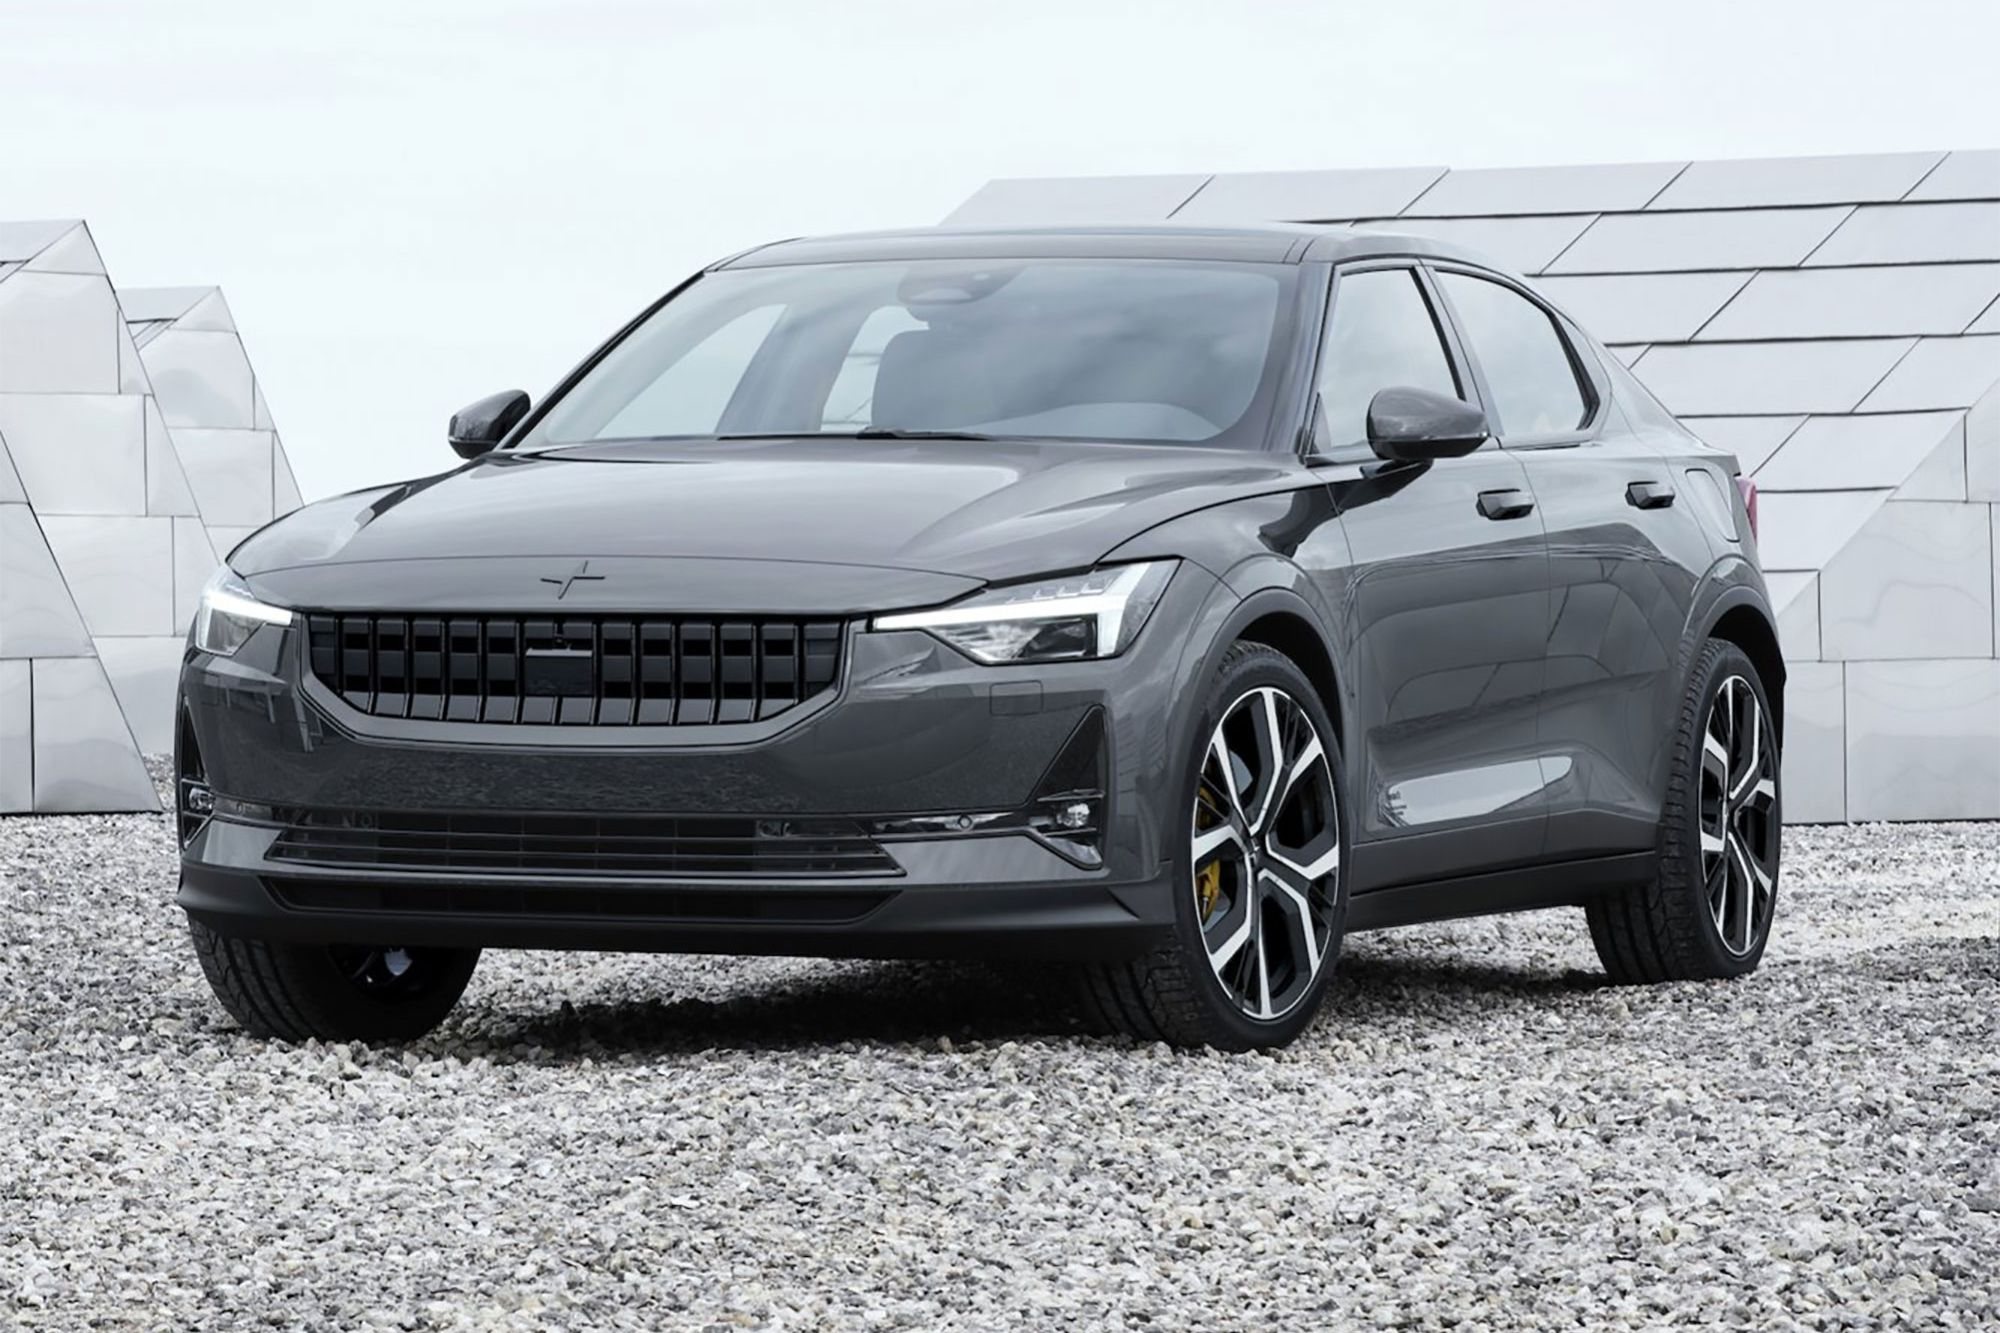 Volvo's High-Performance Polestar Brand Just Unveiled Sweden's Answer to the Tesla Model 3